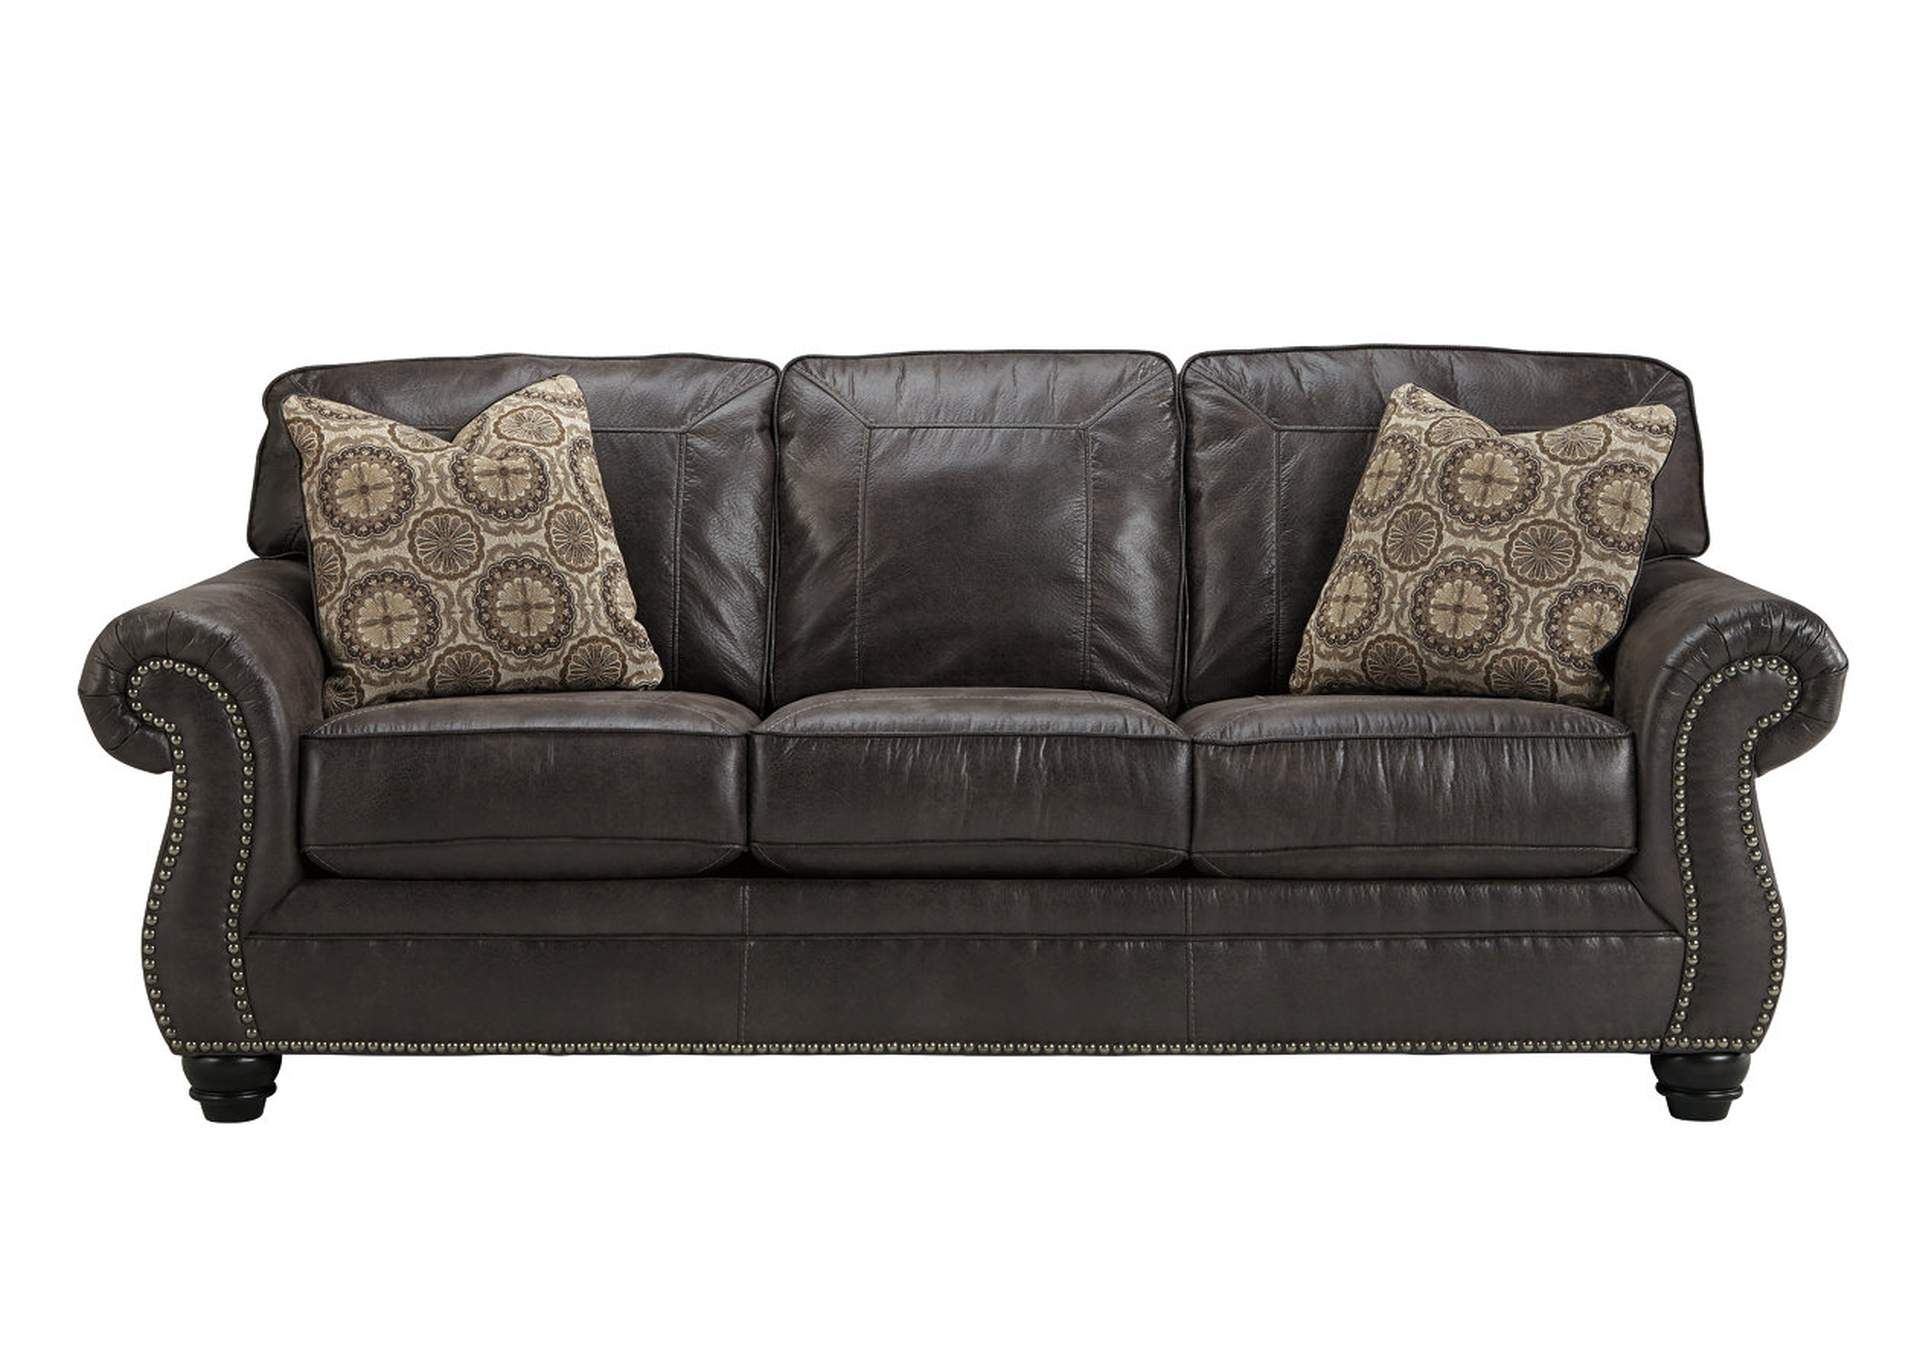 Breville Charcoal Queen Sofa Sleeper,Benchcraft